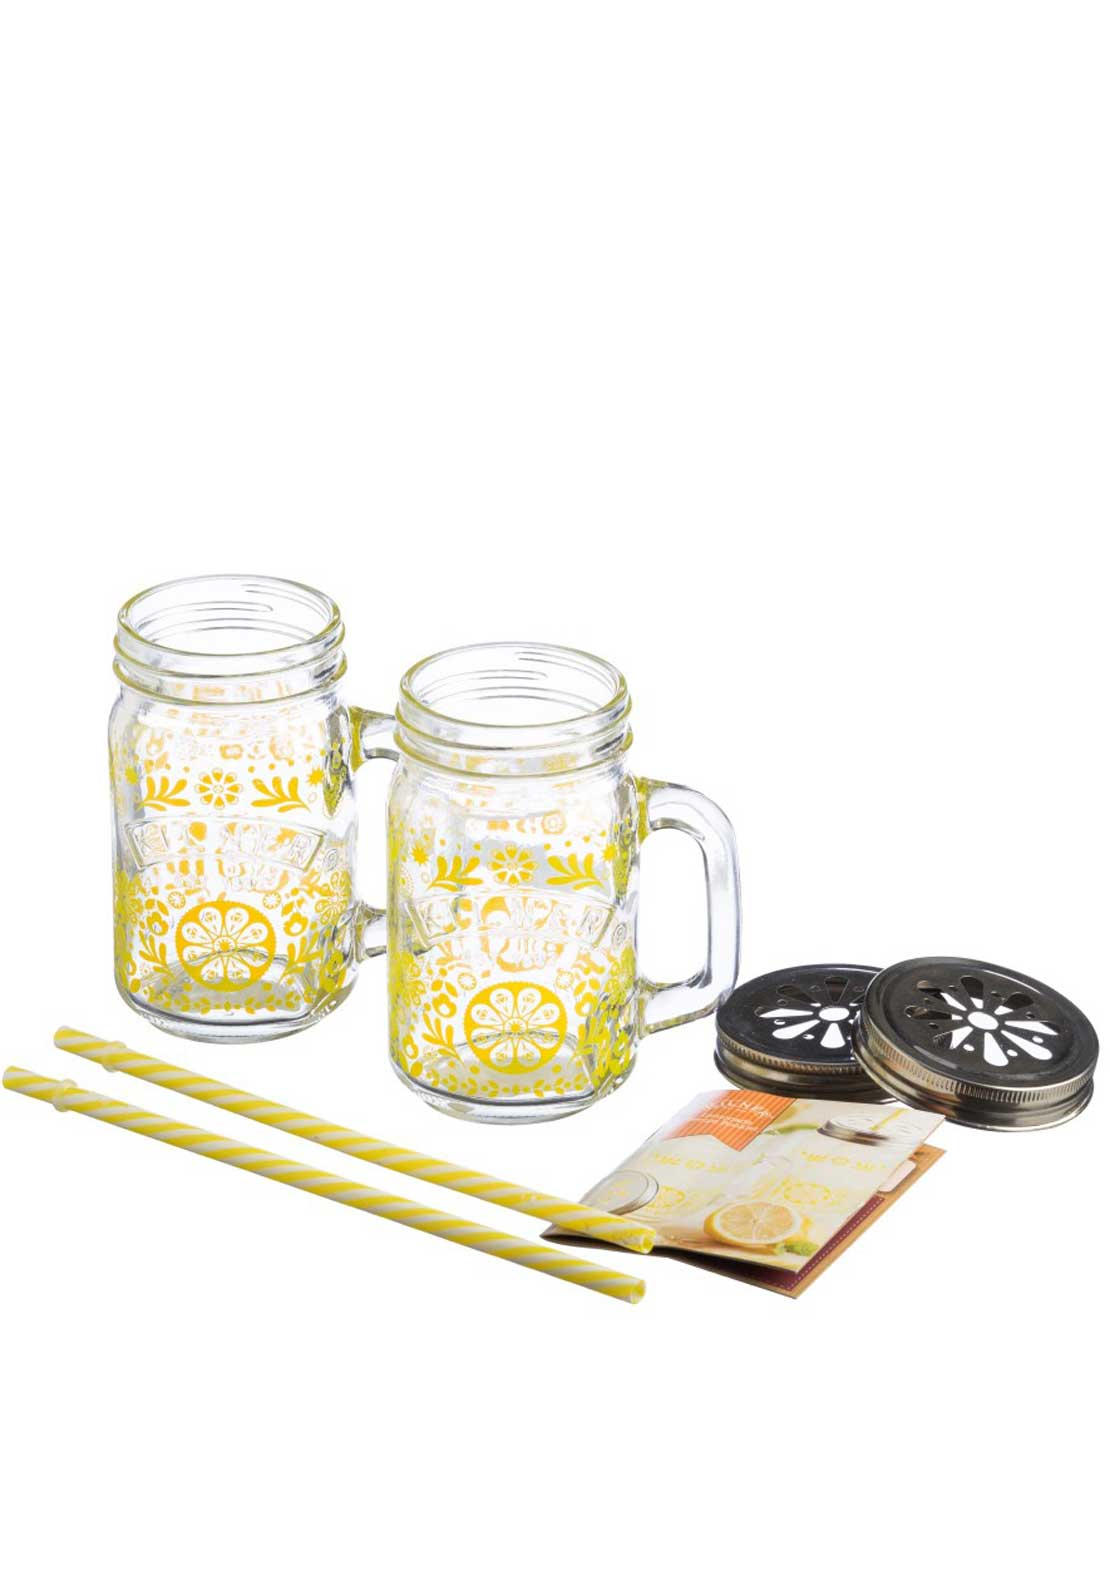 Kilner 7 Piece Lemonade Mug, Straw & Lid Set